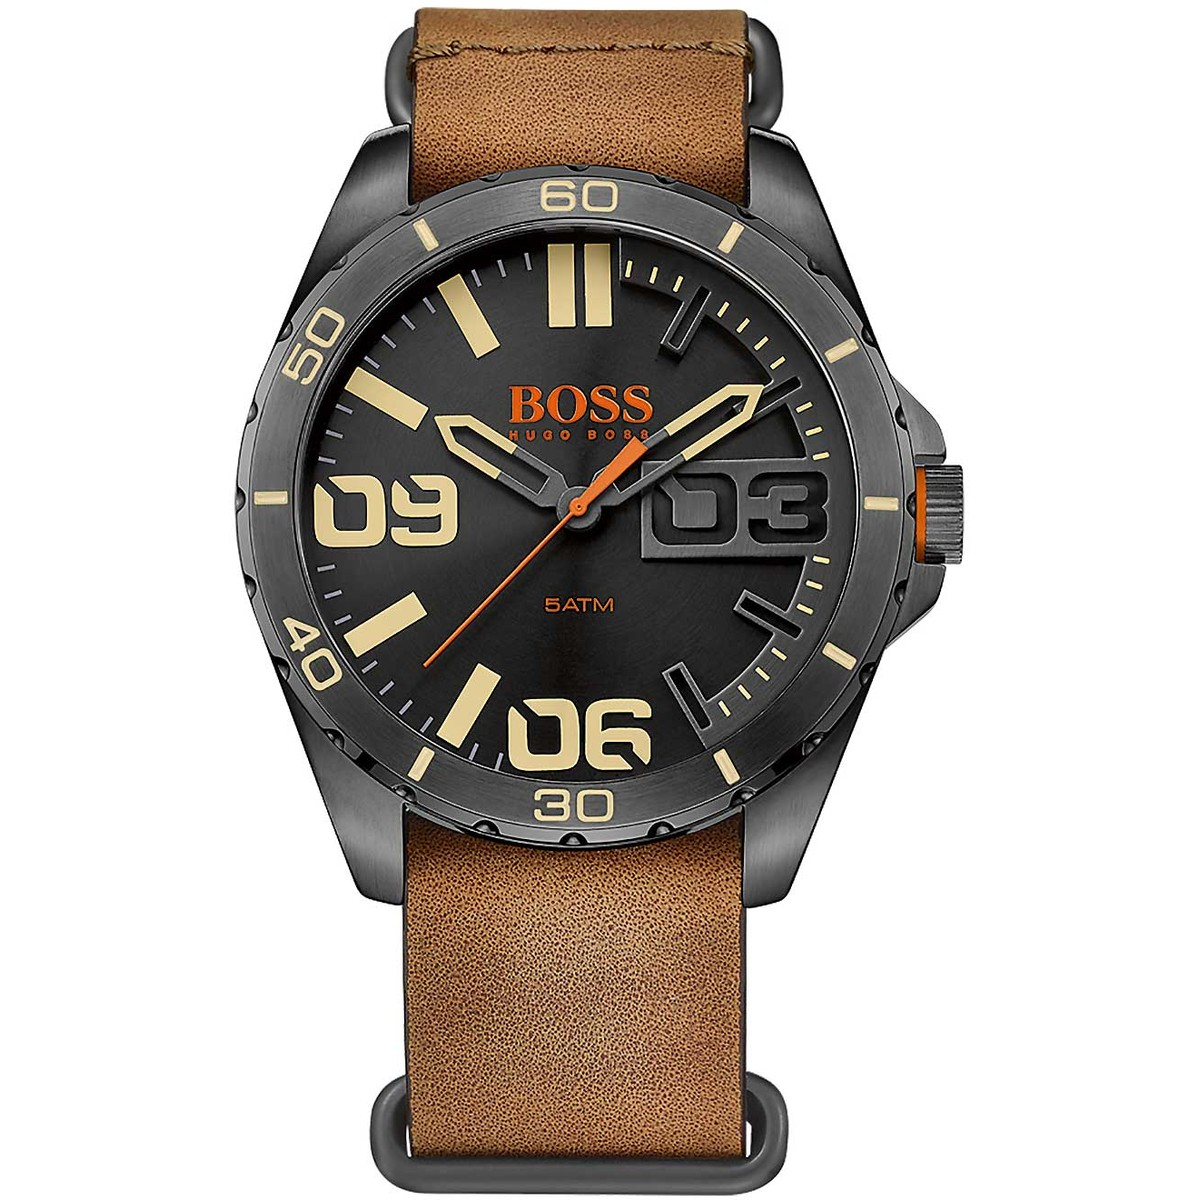 Ceas barbatesc Hugo Boss 1513316 Berlin original de mana